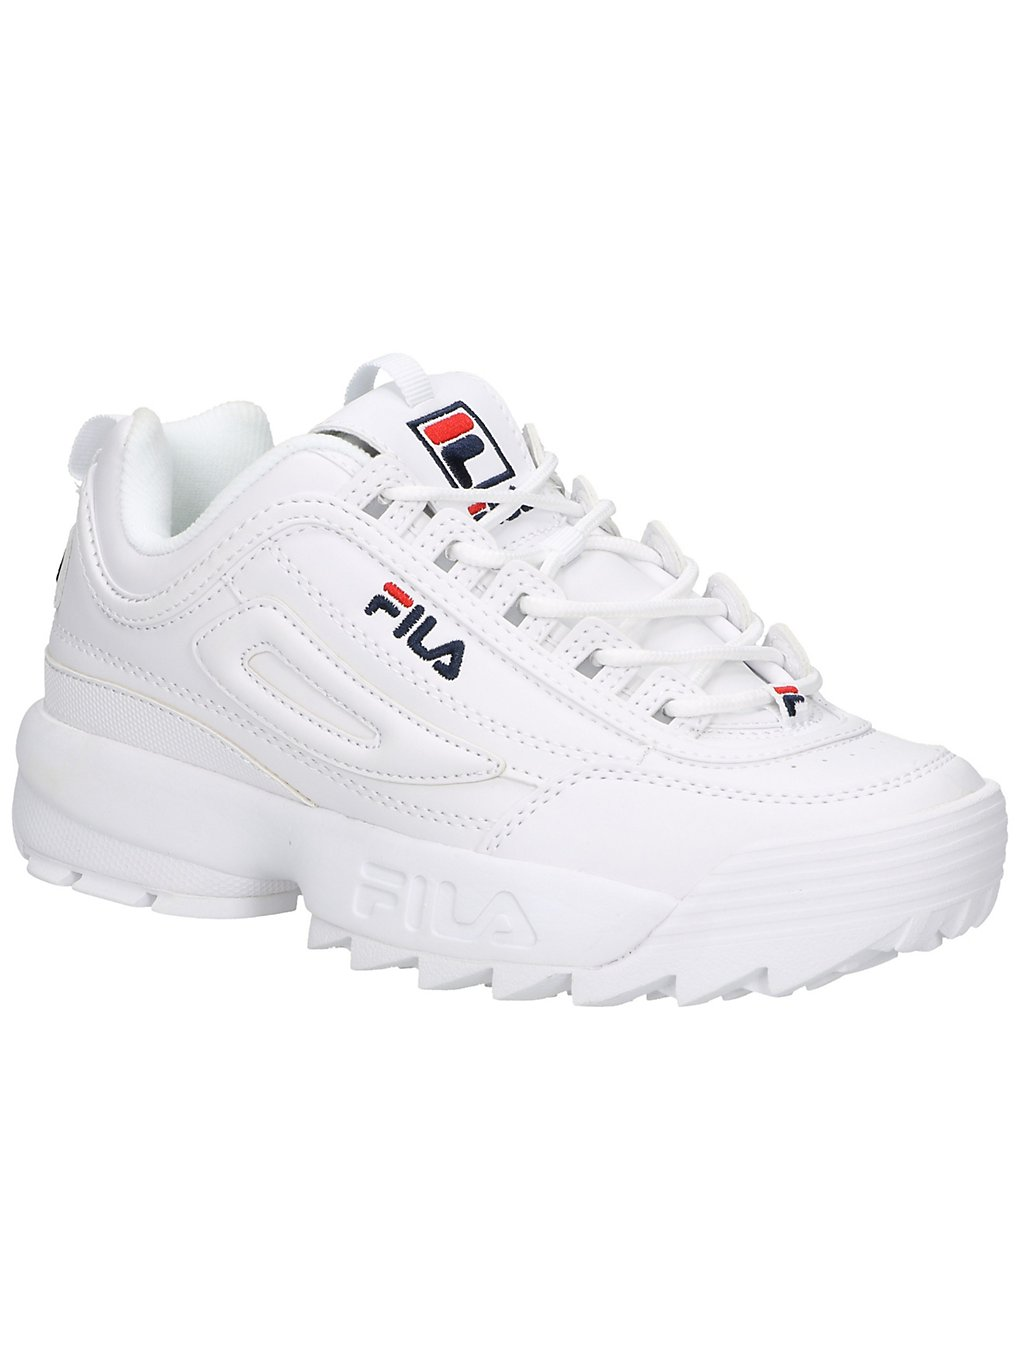 099cb5e25f5 Fila Disruptor Low Sneakers white Gr. 36.0 EU - Jeftinije.hr